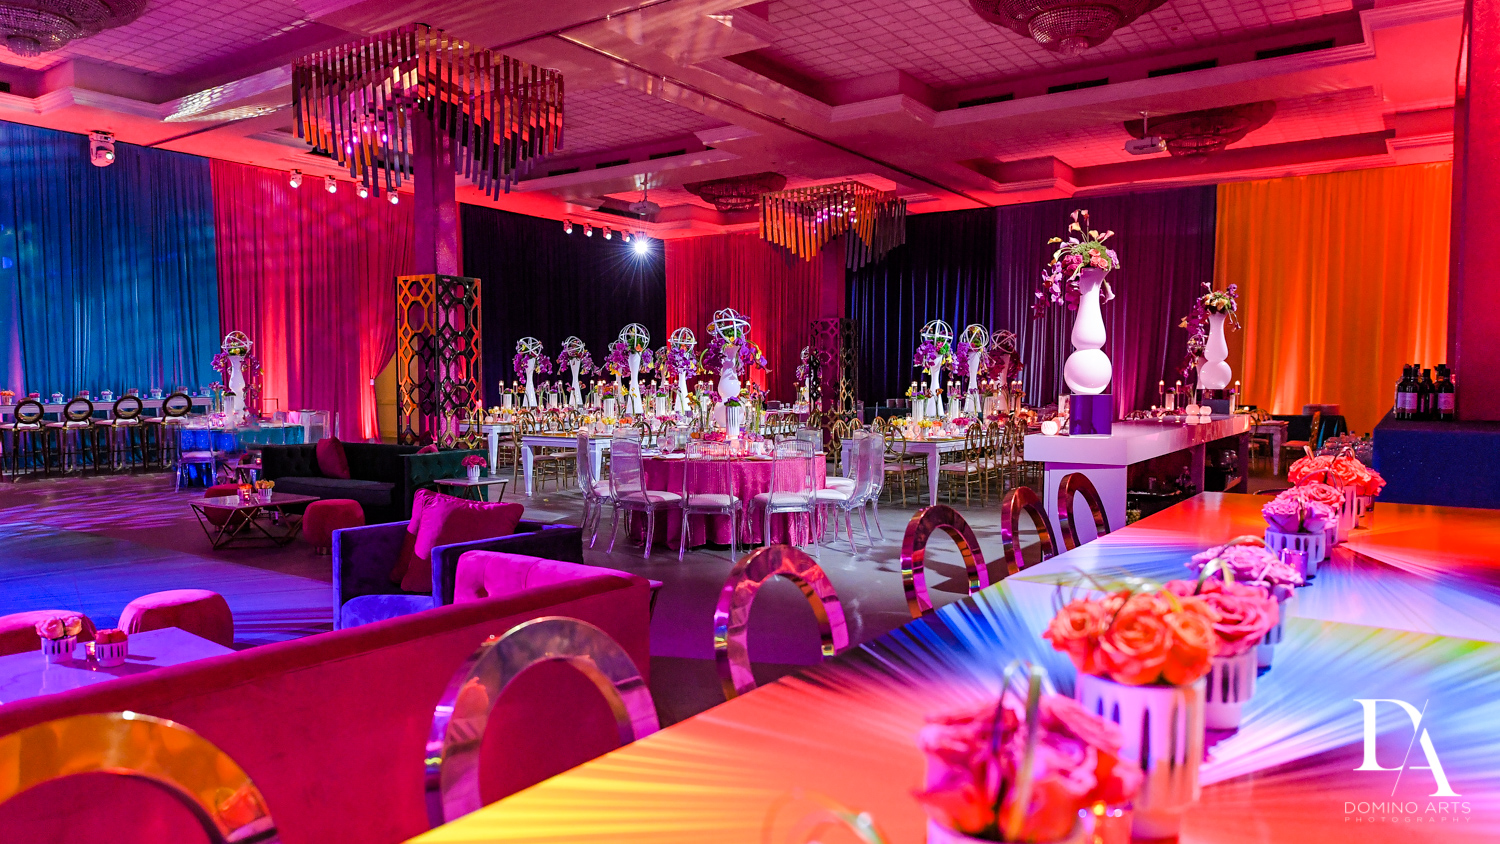 luxury decor at Colorful Rainbow BurstBat Mitzvah at Aventura Turnberry Jewish Center by Domino Arts Photography